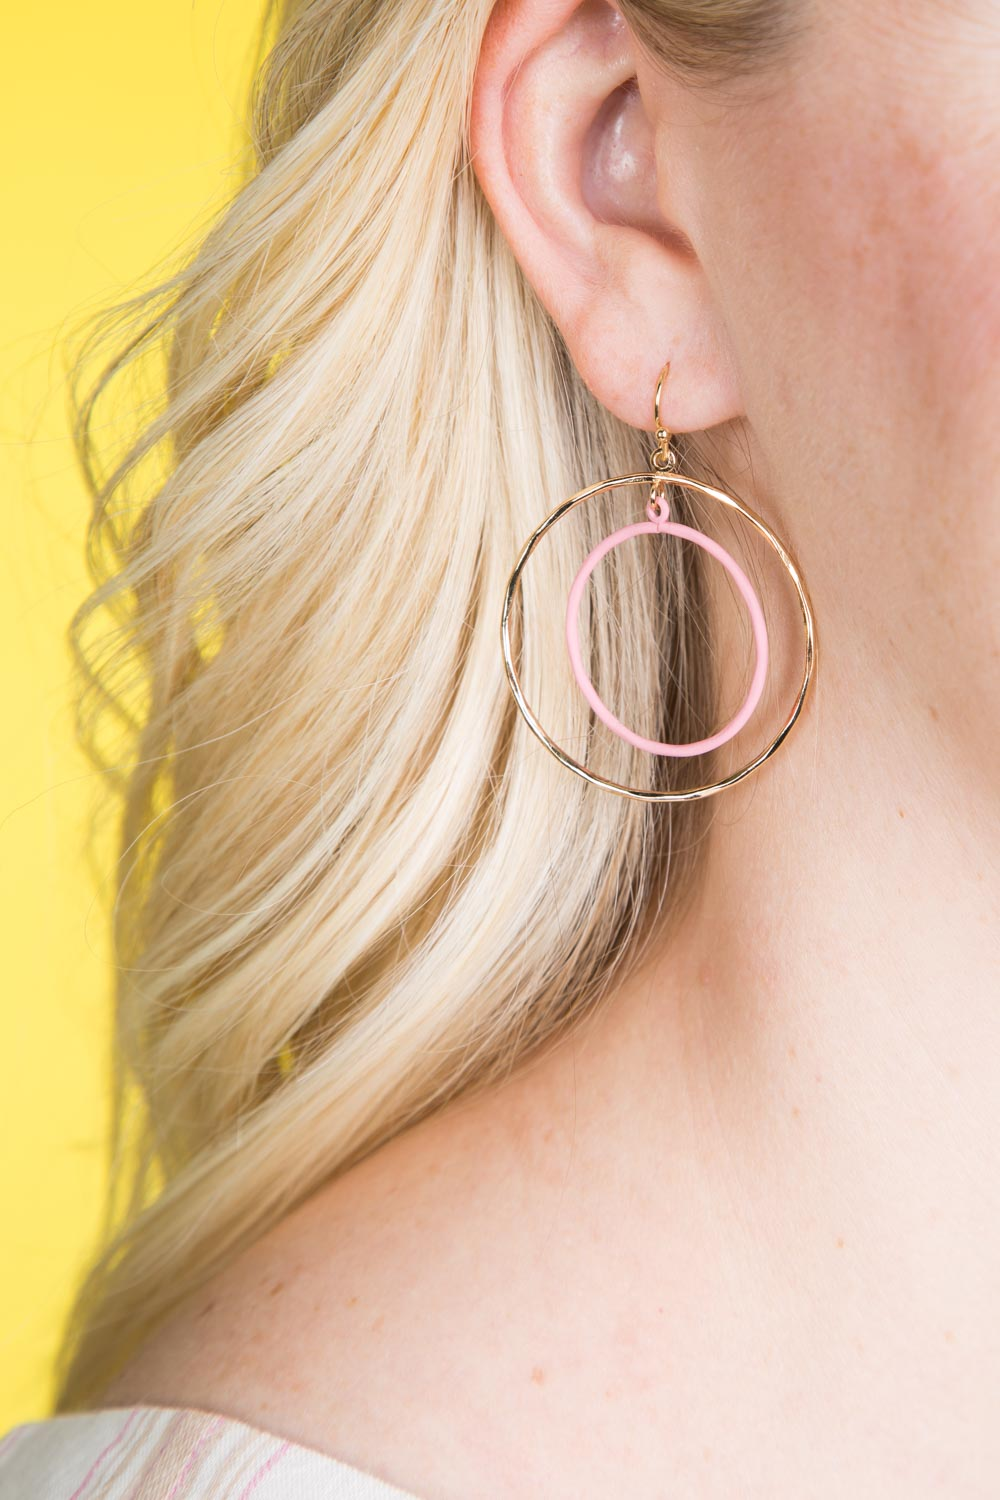 Type 1 Loop 'D Loop Earrings